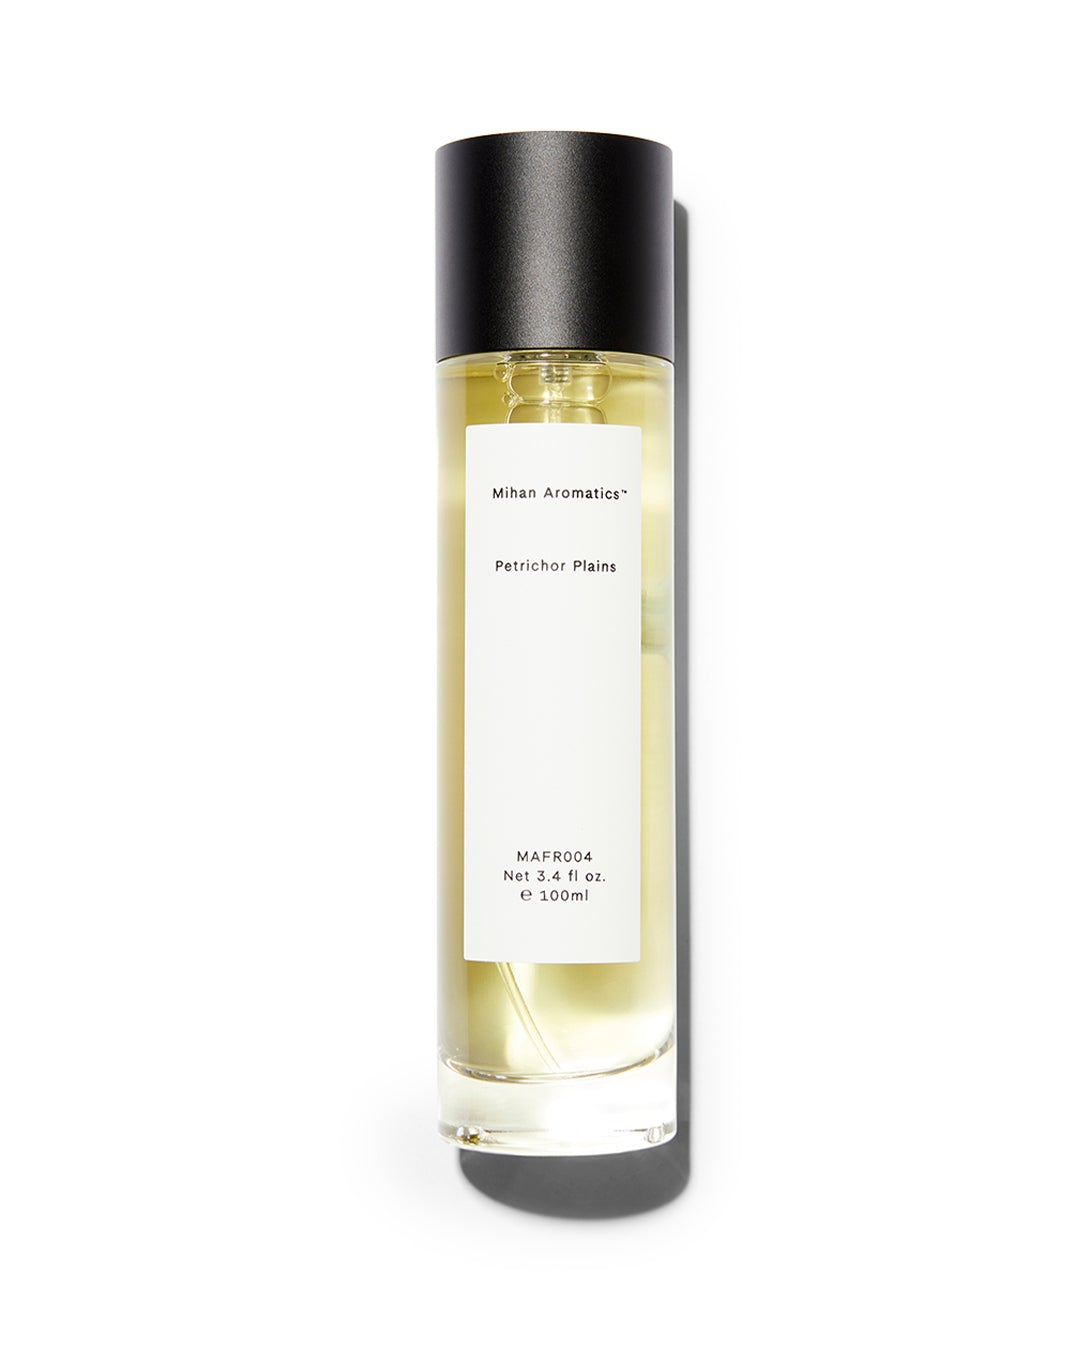 Mihan Aromatics | Petrichor Plains Parfum | 100ml